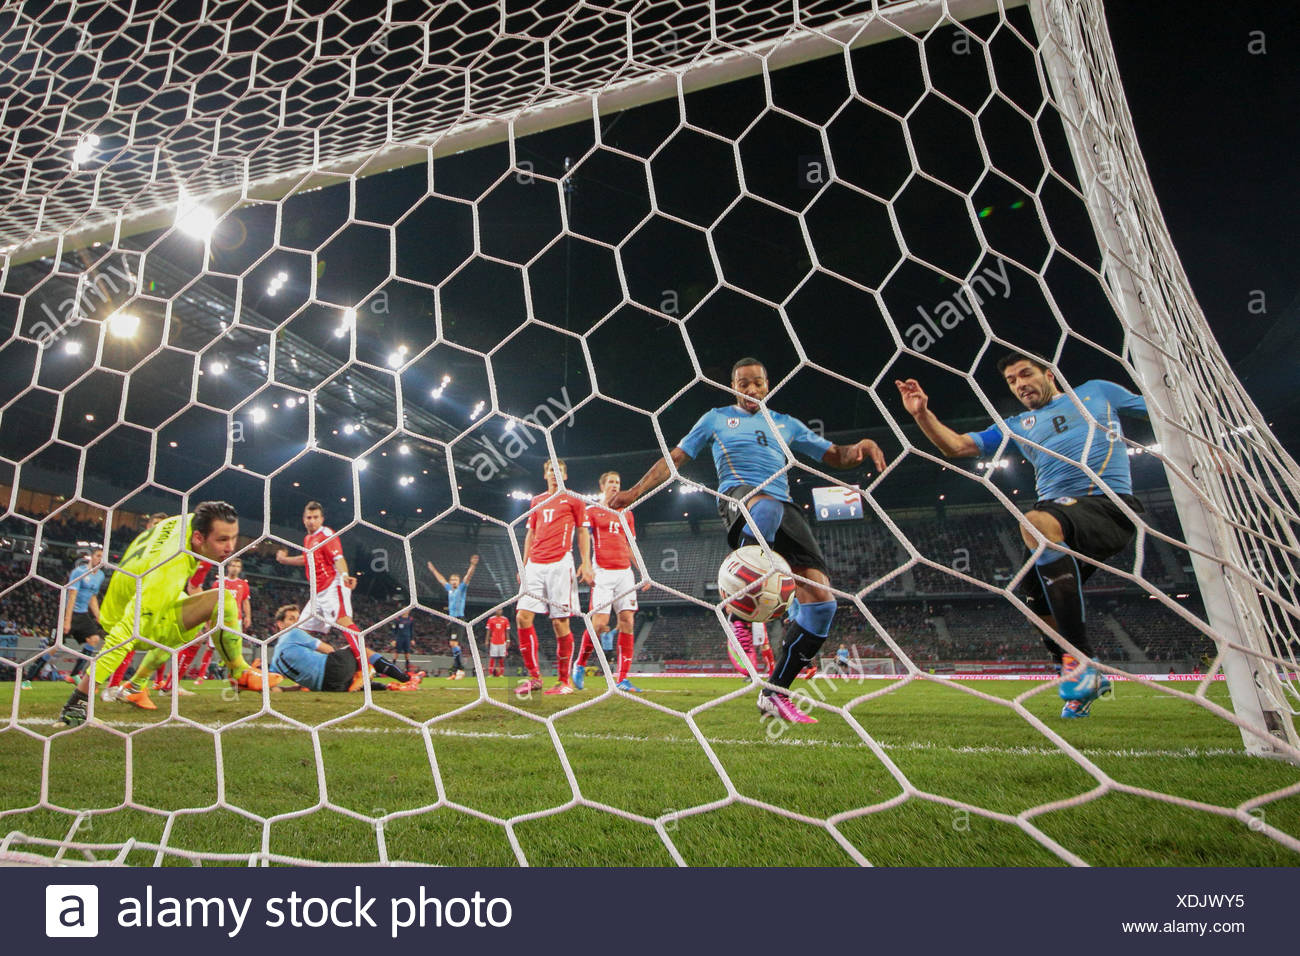 Alvaro Pereira, No. 6 Uruguay, scoring a goal in a friendly soccer game between Austria and Uruguay, Wörthersee-Arena - Stock Image